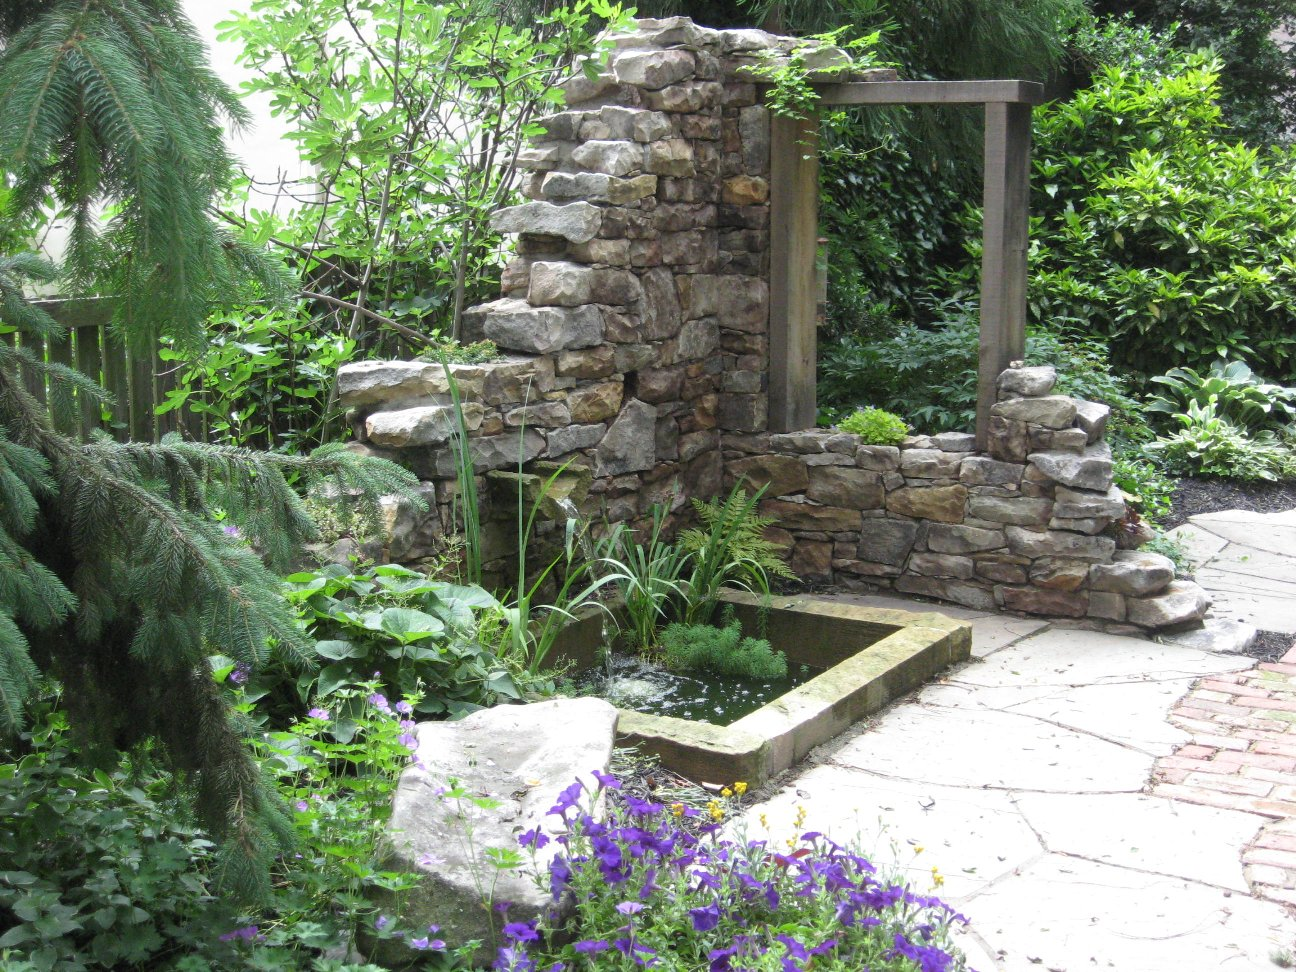 Stone wall and water feature